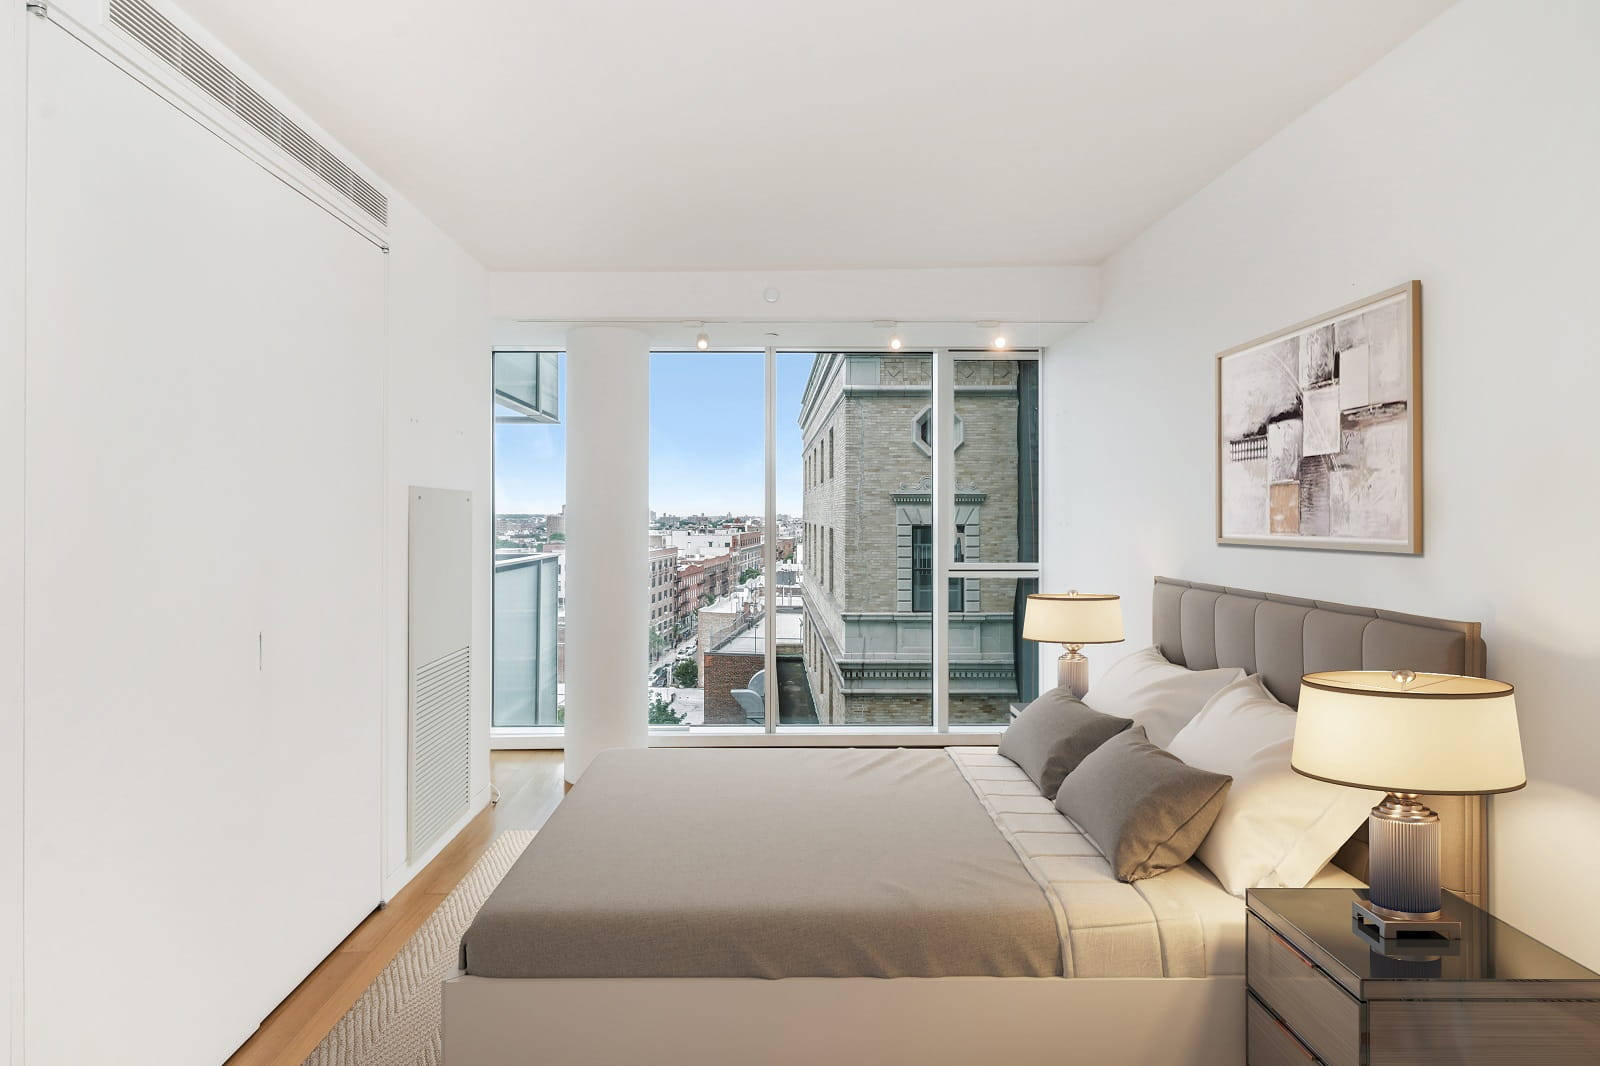 Real Estate Photography in Brooklyn - NY - USA - Bedroom View